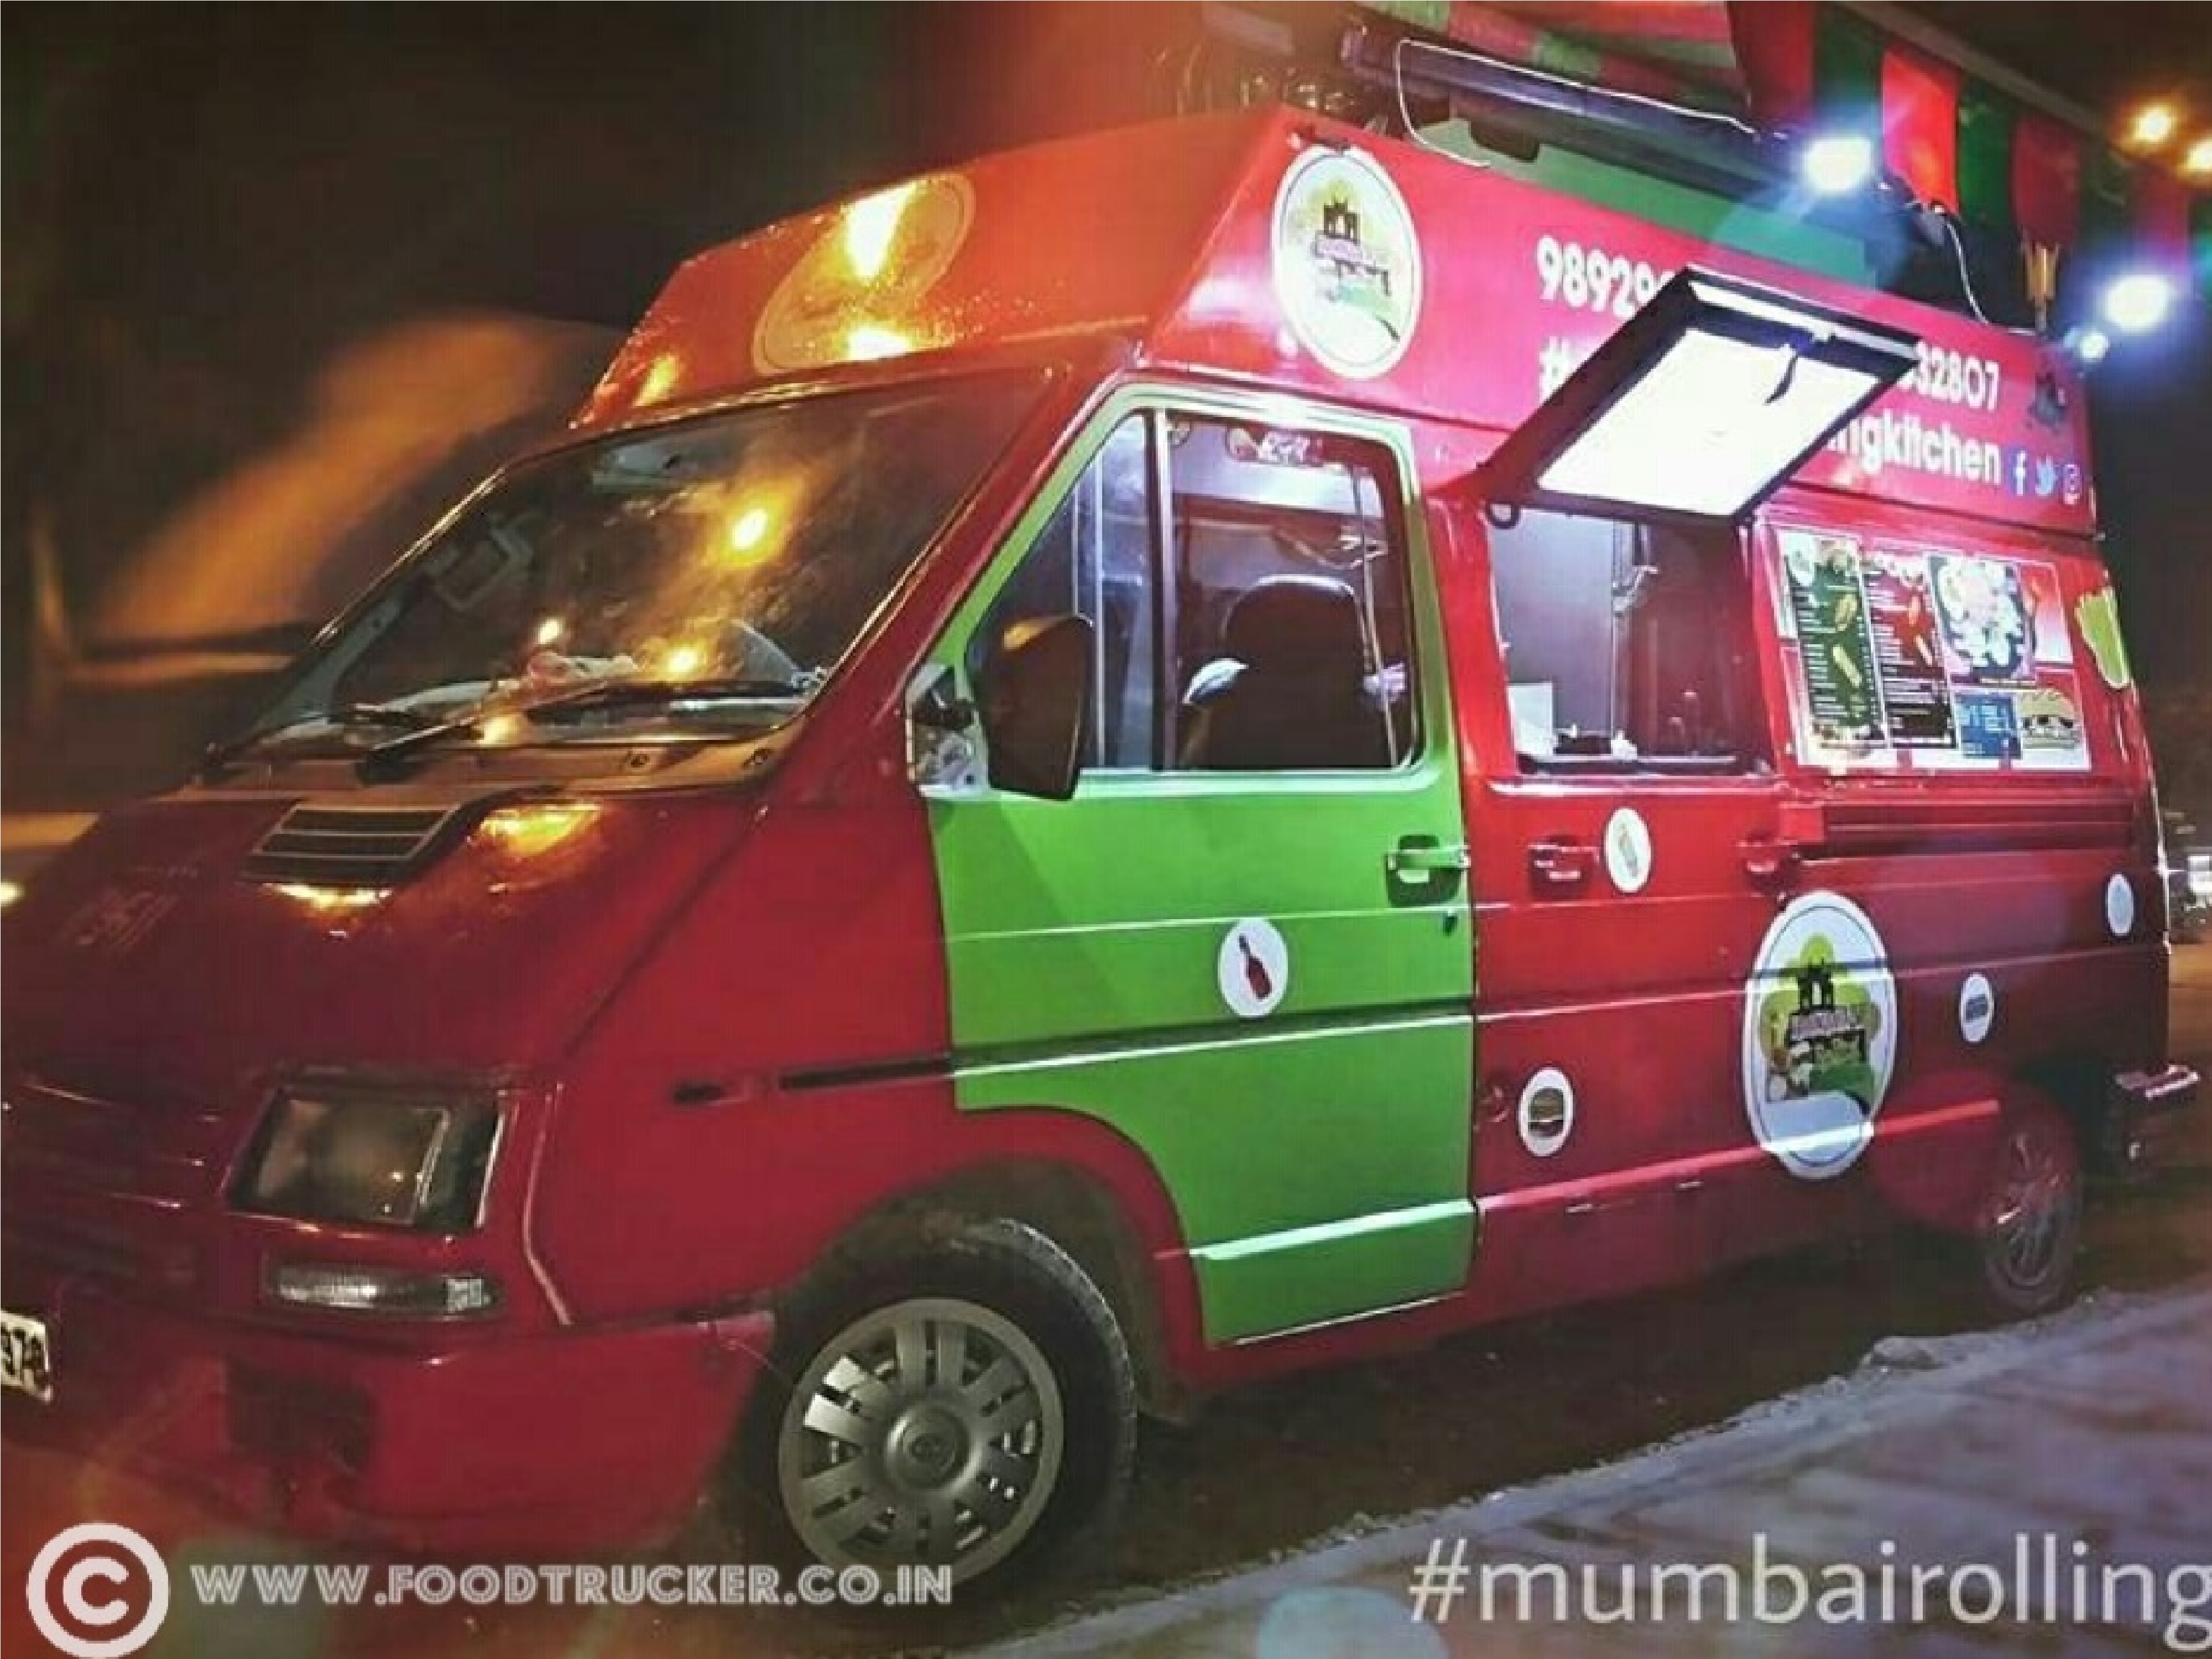 Foodtruck Manufacturer in Pune, Food Truck Manufacturer In Mumbai, Food Truck Manufacturer In Aurangabad